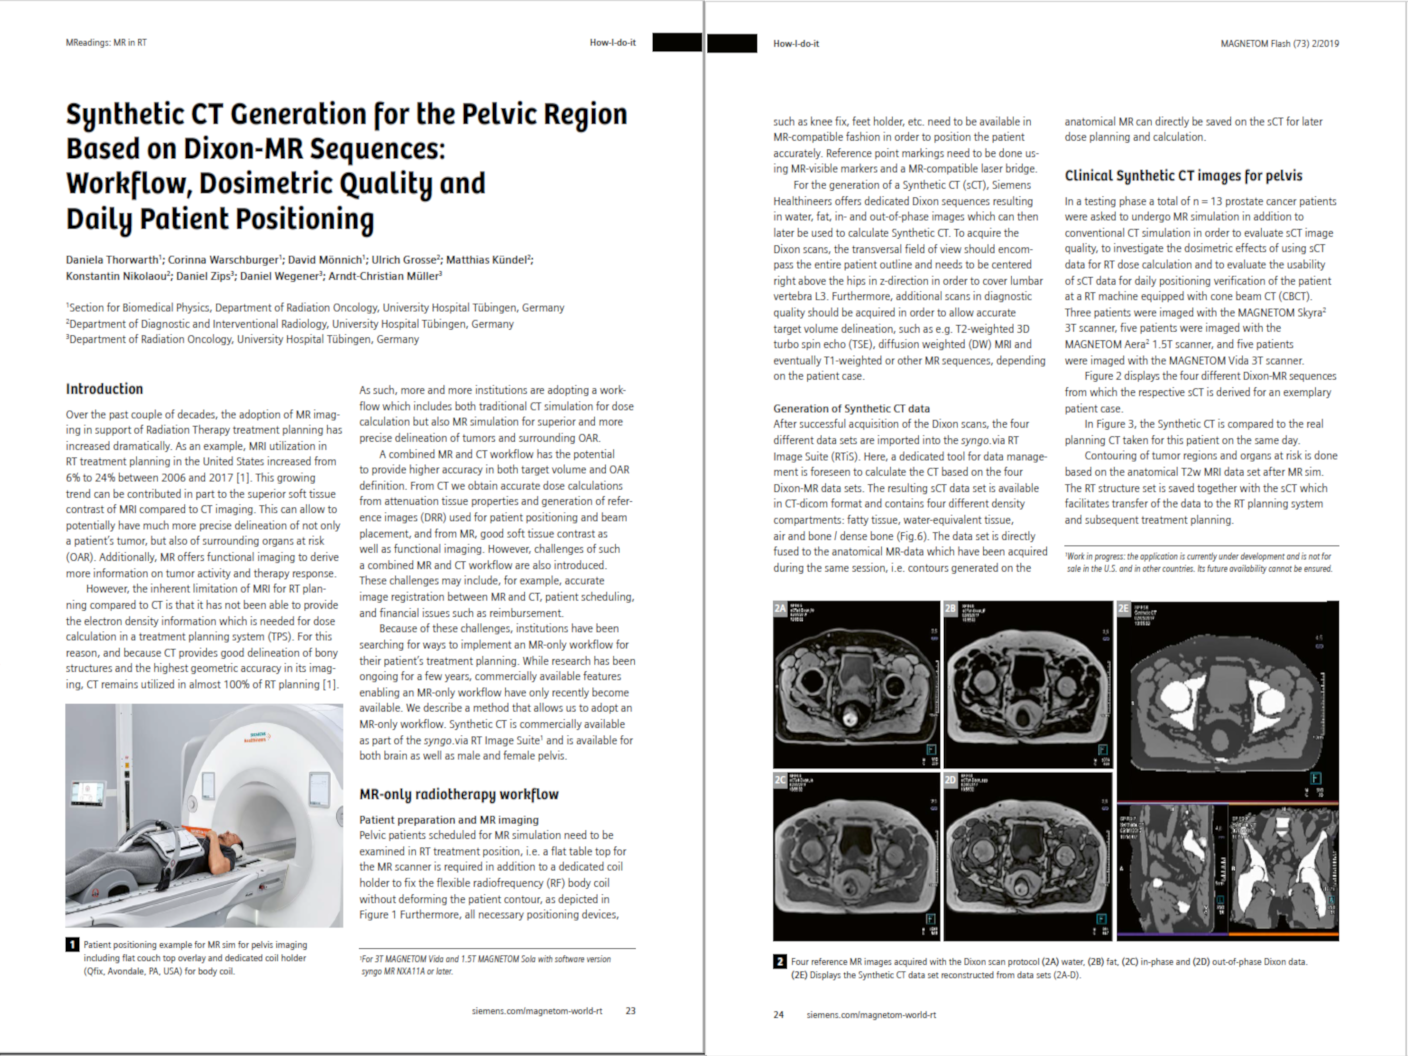 Synthetic CT Generation for the Pelvic Region Based on Dixon-MR Sequences